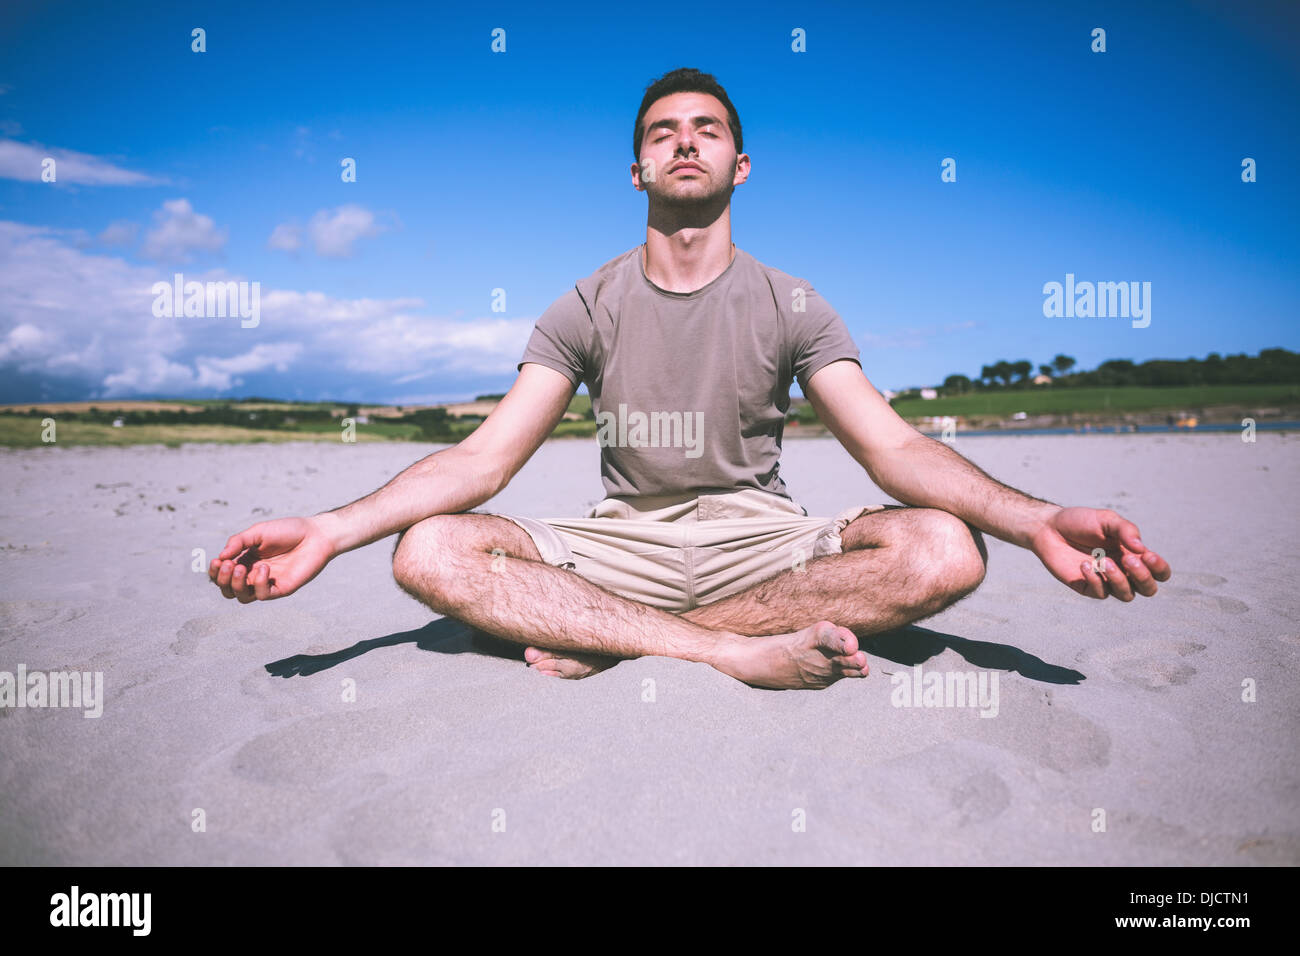 Attractive calm man relaxing with legs crossed - Stock Image